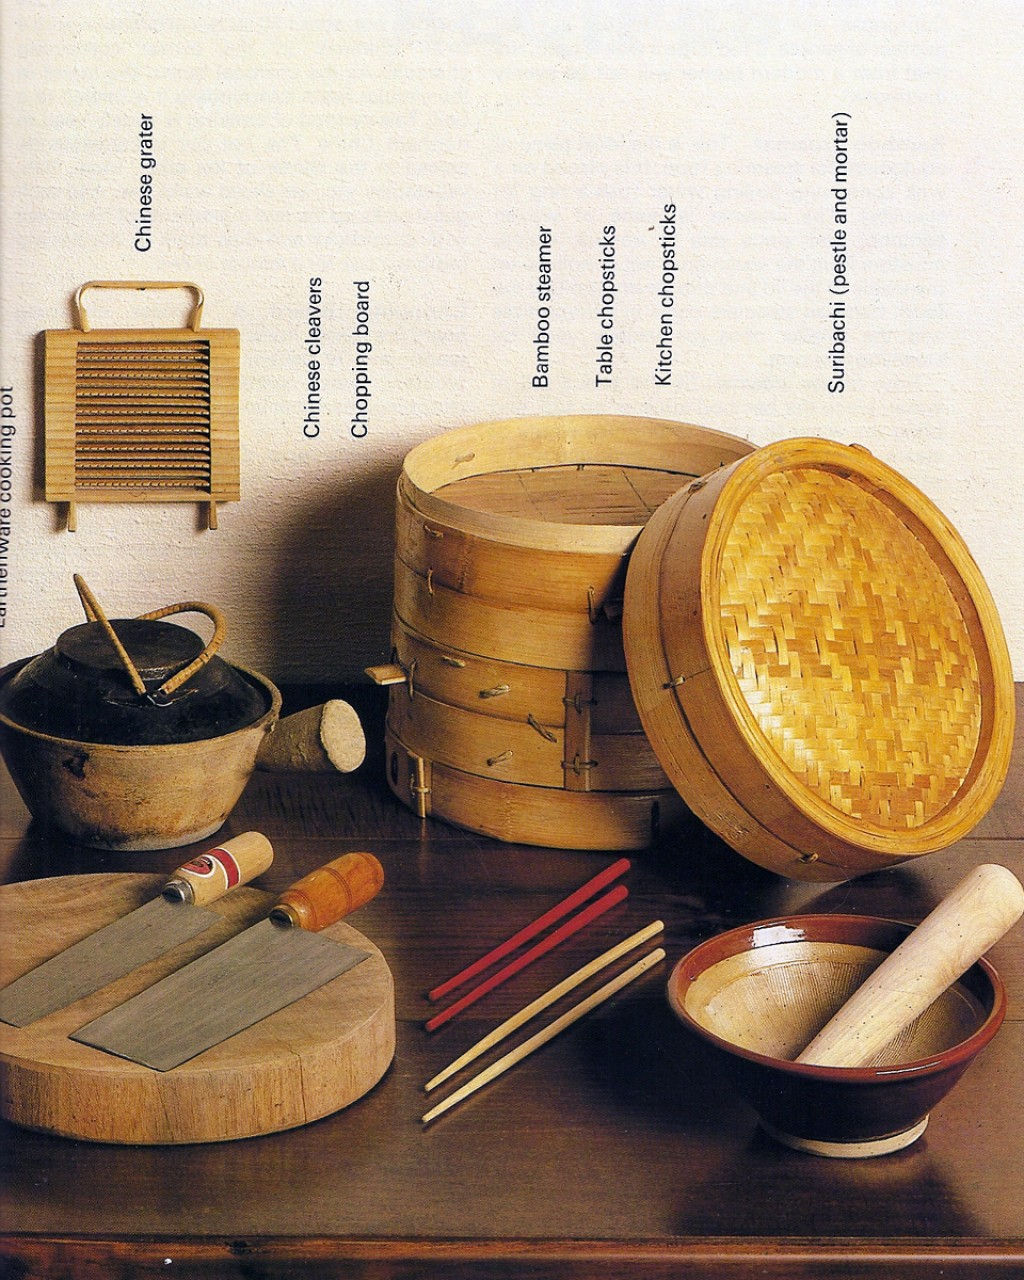 HEALTHY ASIAN COOKING - CHINESE | Kittery Adult Education